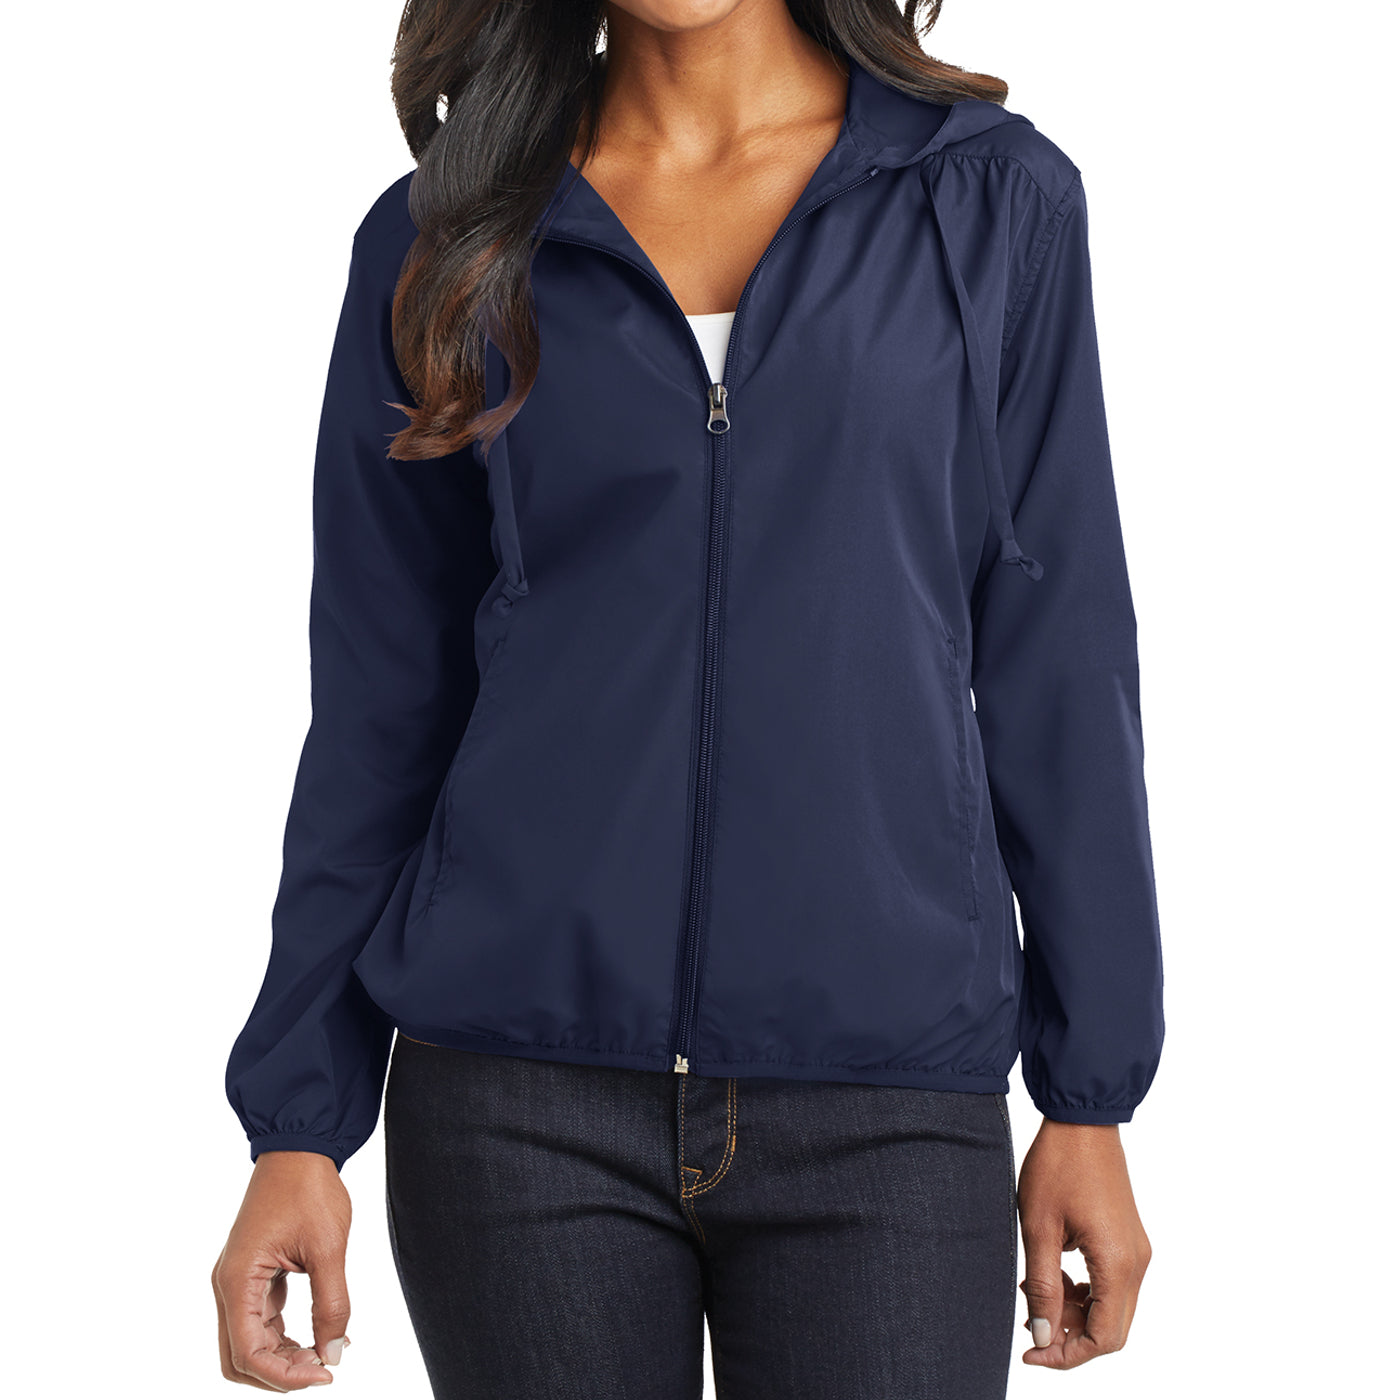 Women's Hooded Essential Jacket - True Navy - Front